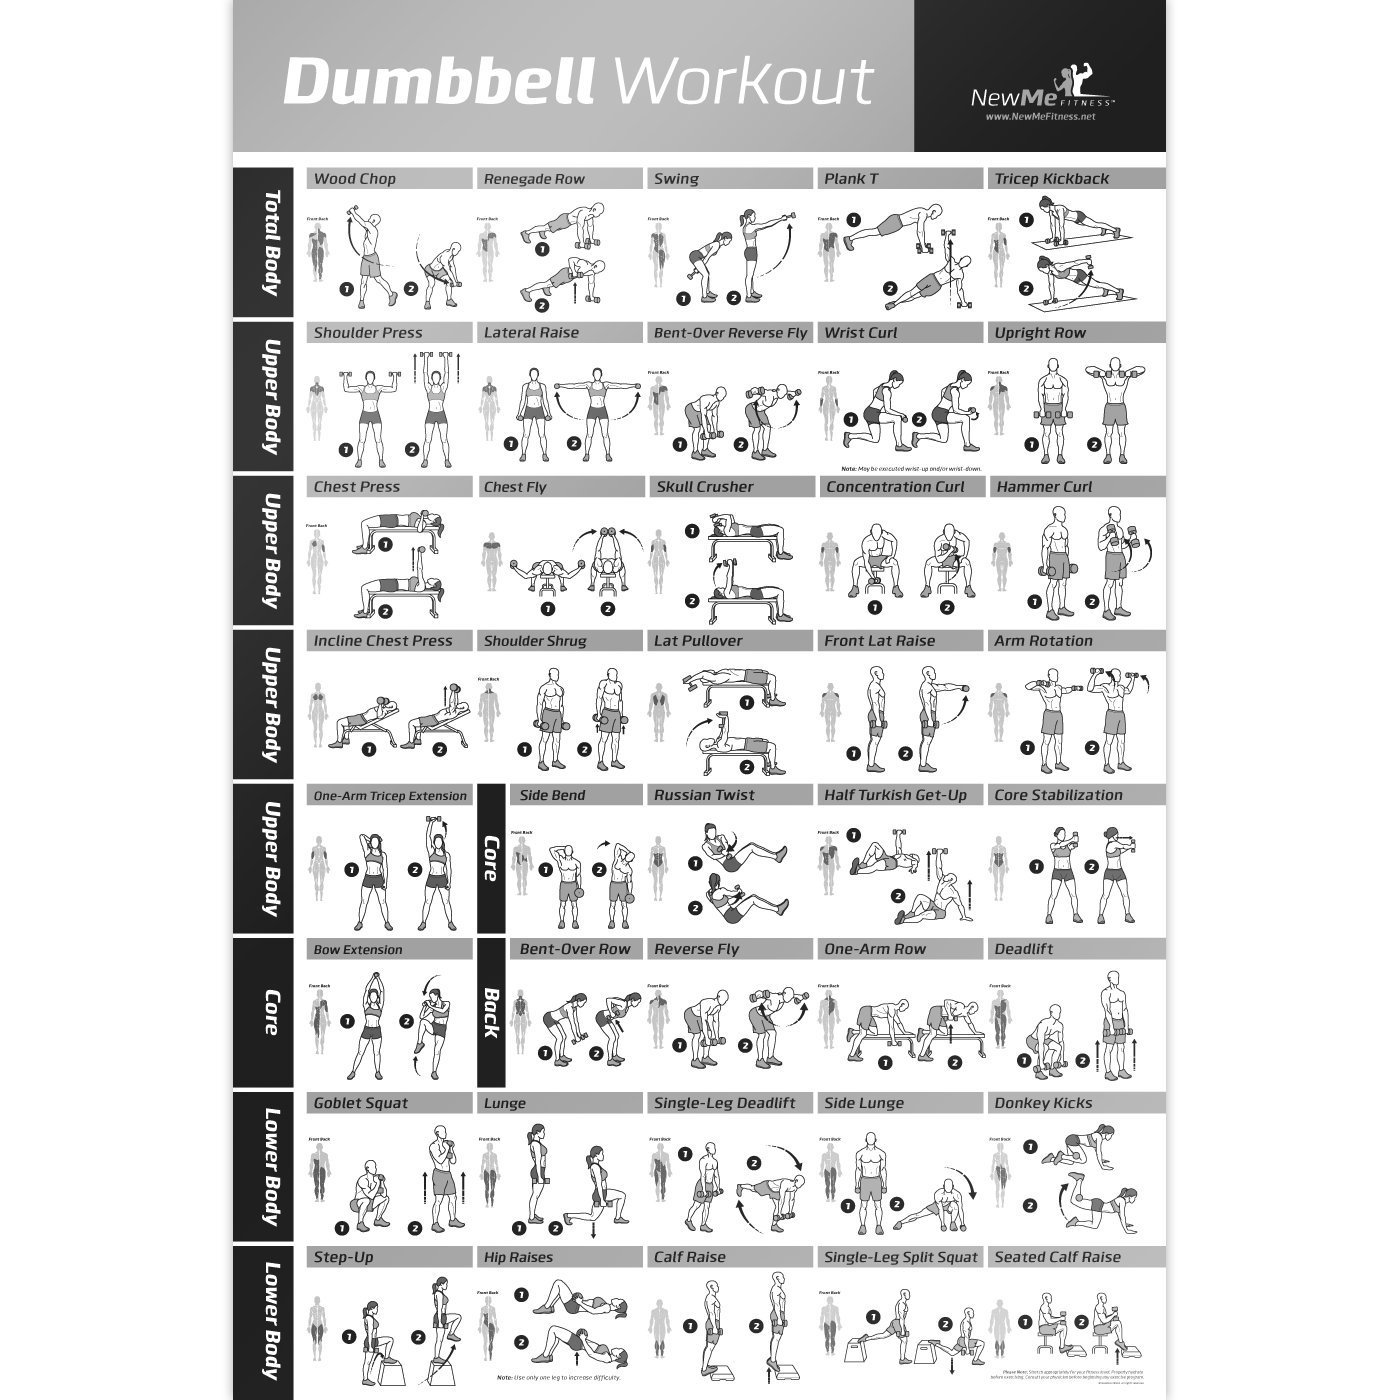 Buy Dumbbell Workout Exercise Poster Now Laminated Strength